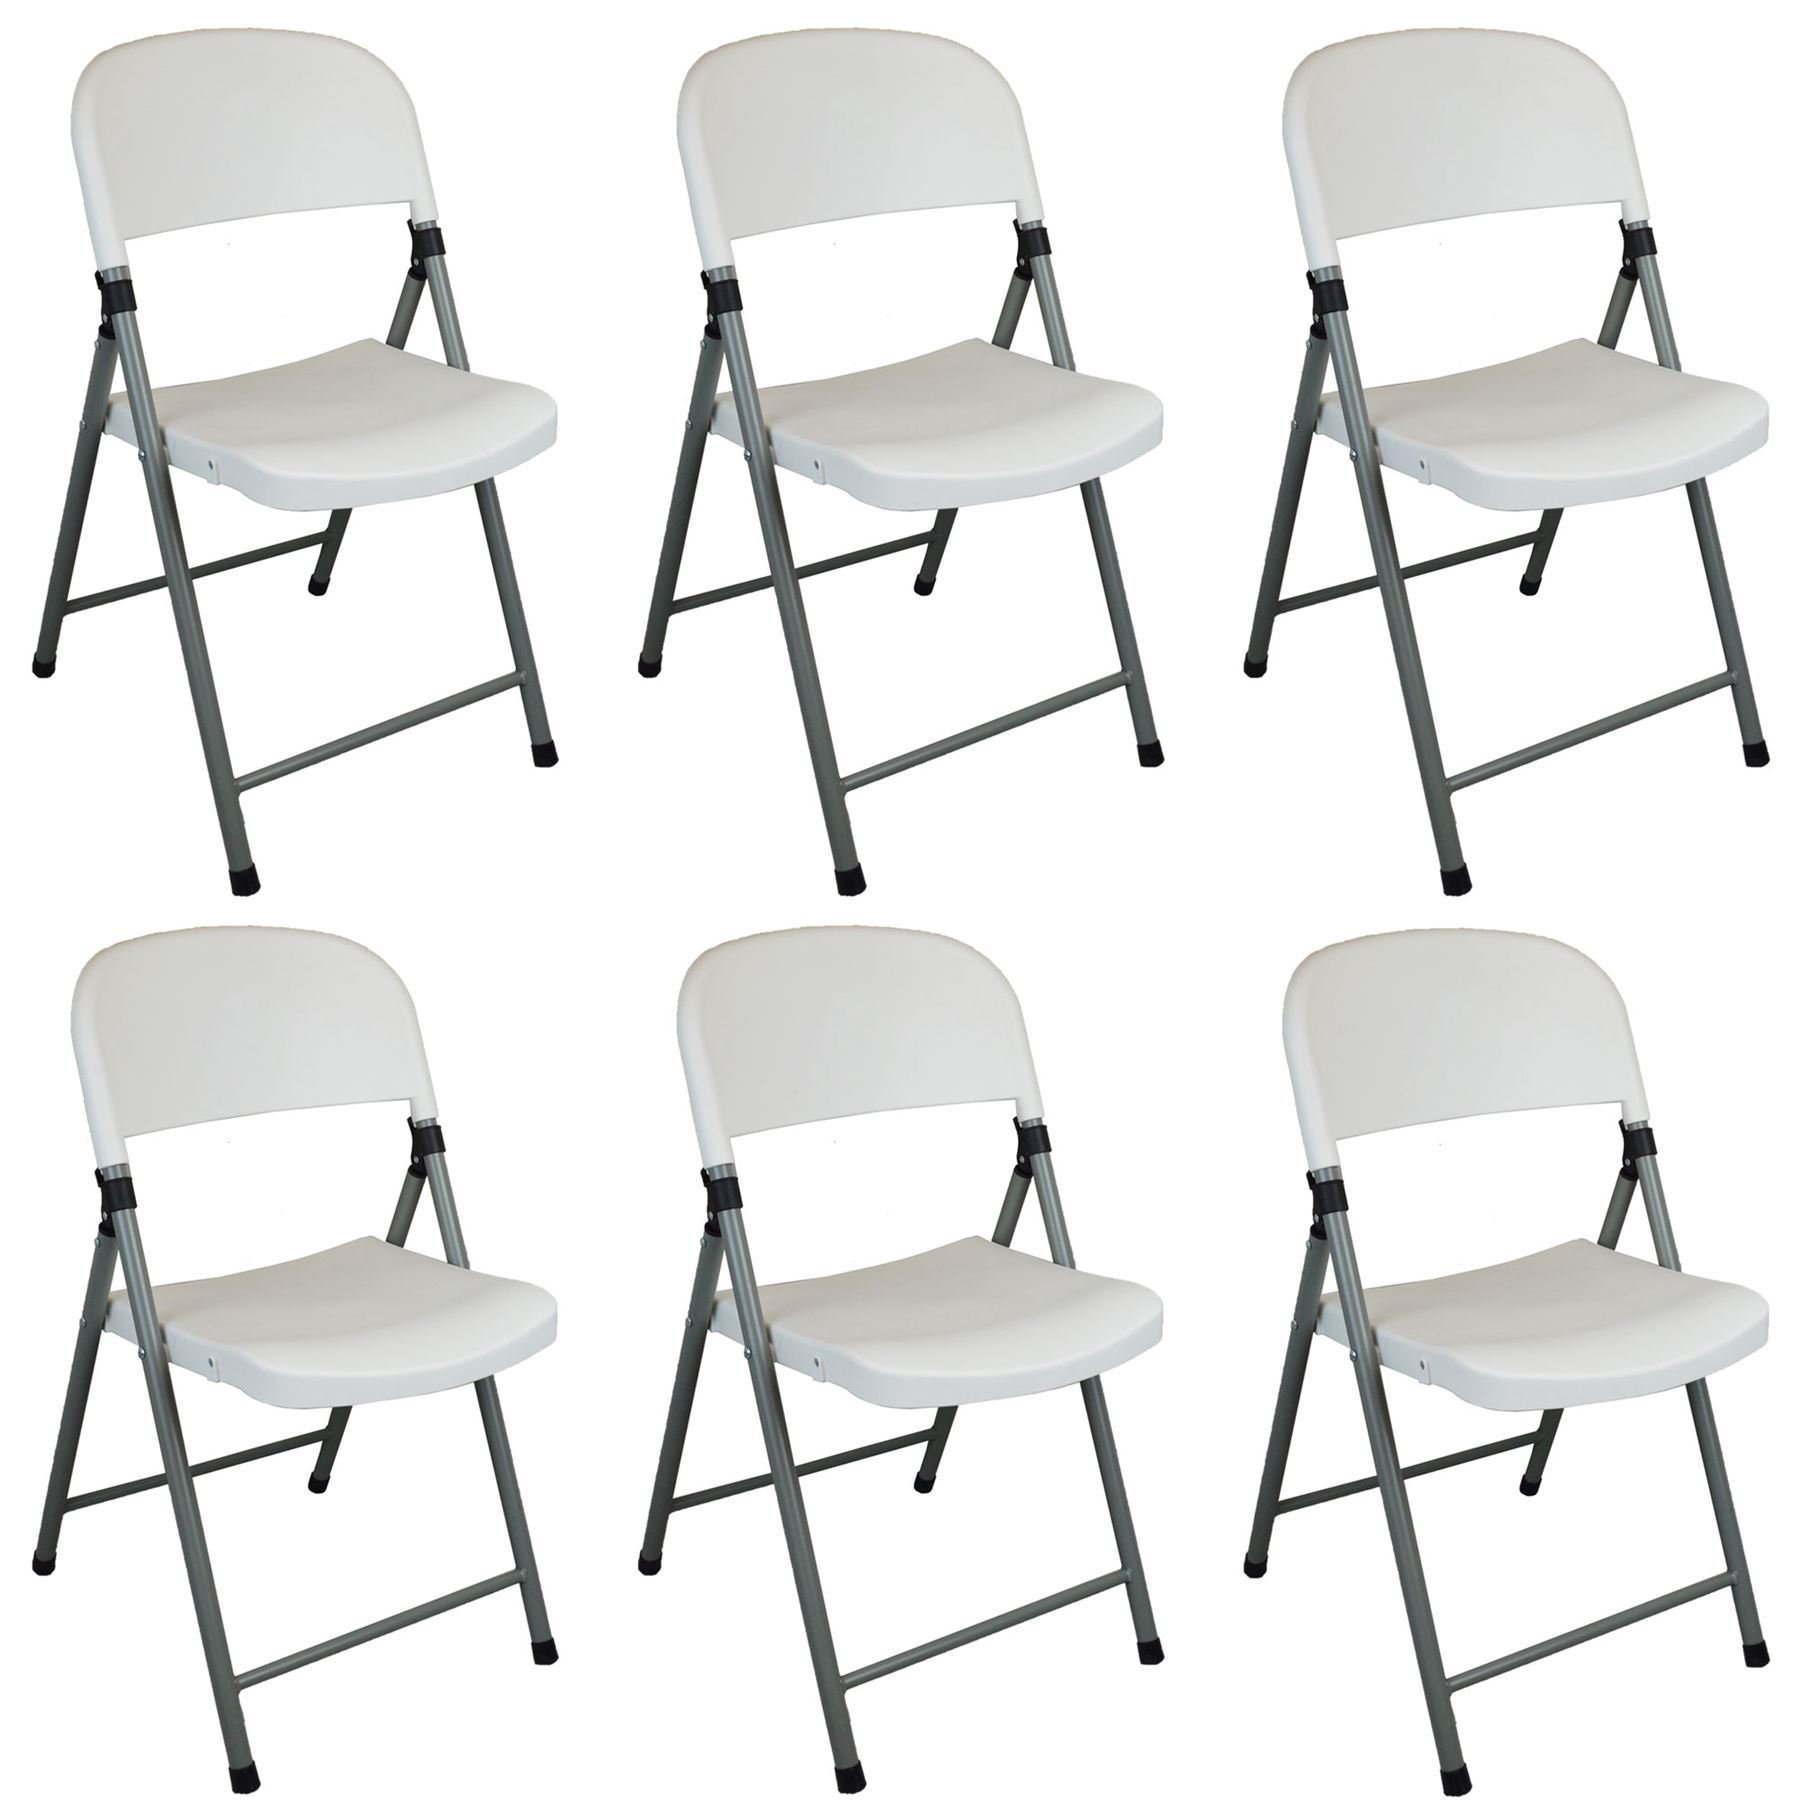 Harbour Housewares Heavy Duty Plastic Folding Camping /& Office Chair for Indoor /& Outdoor Use Pack Of 6